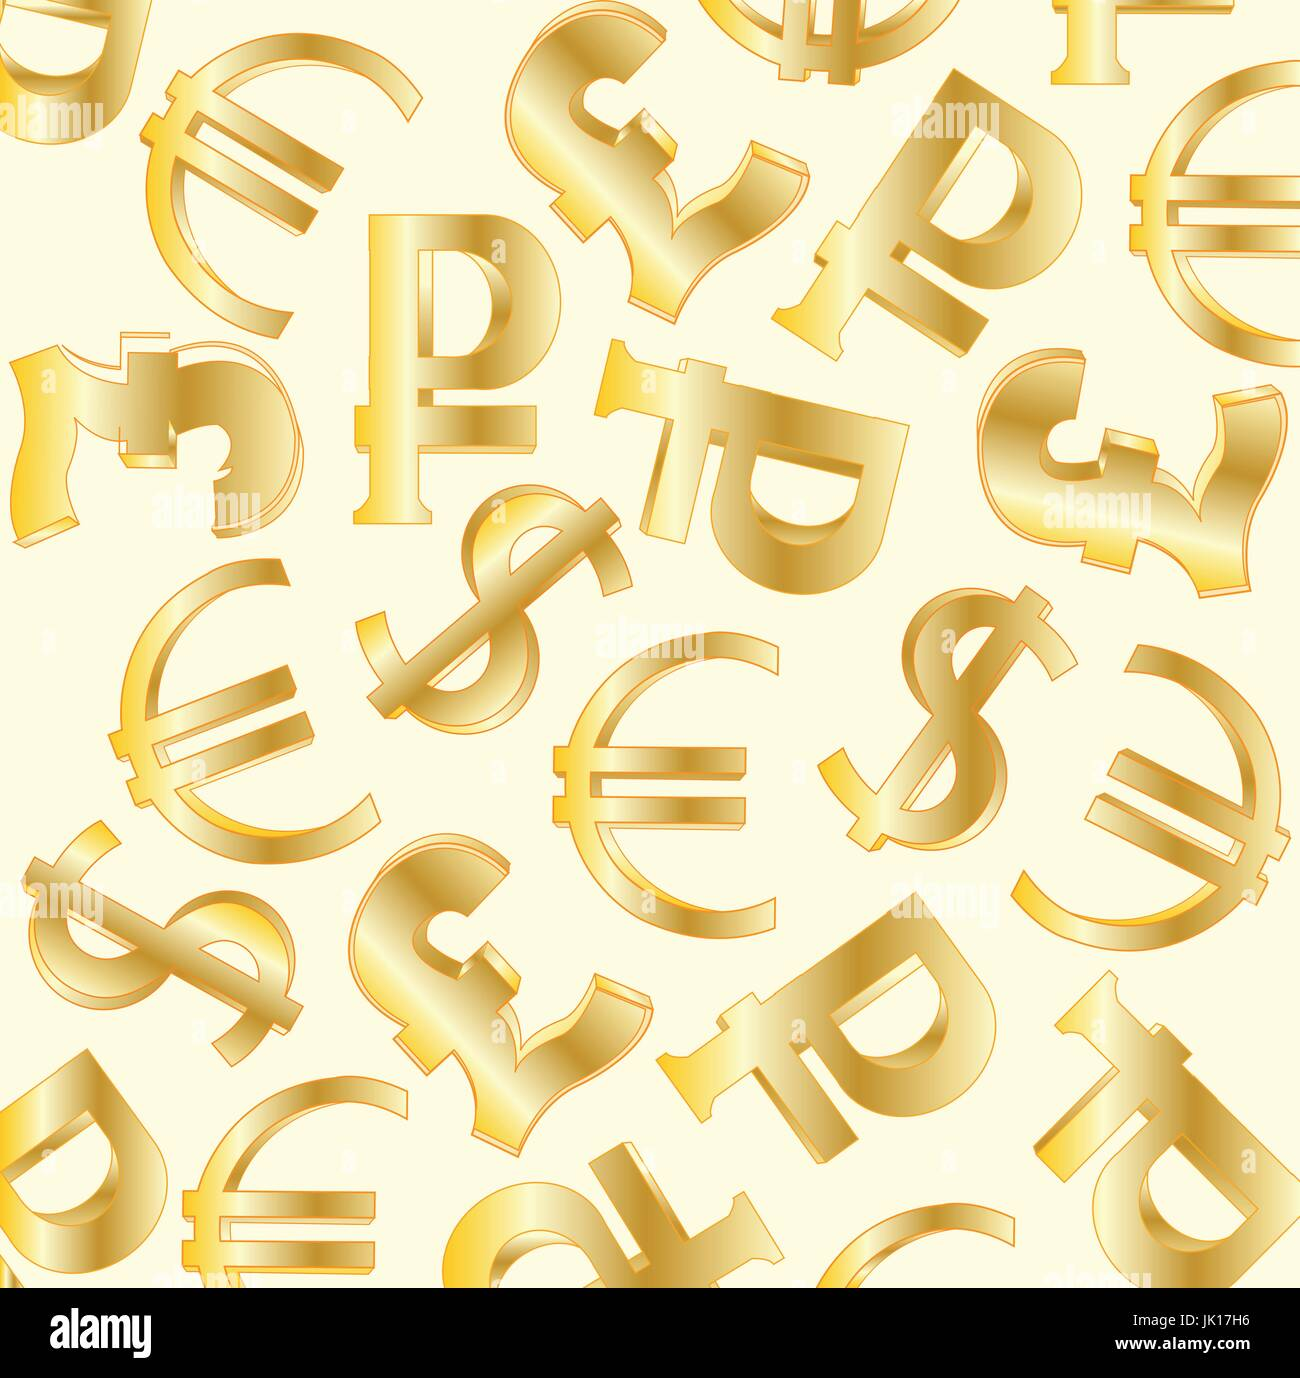 Different Currency Symbols Stock Vector Images Alamy